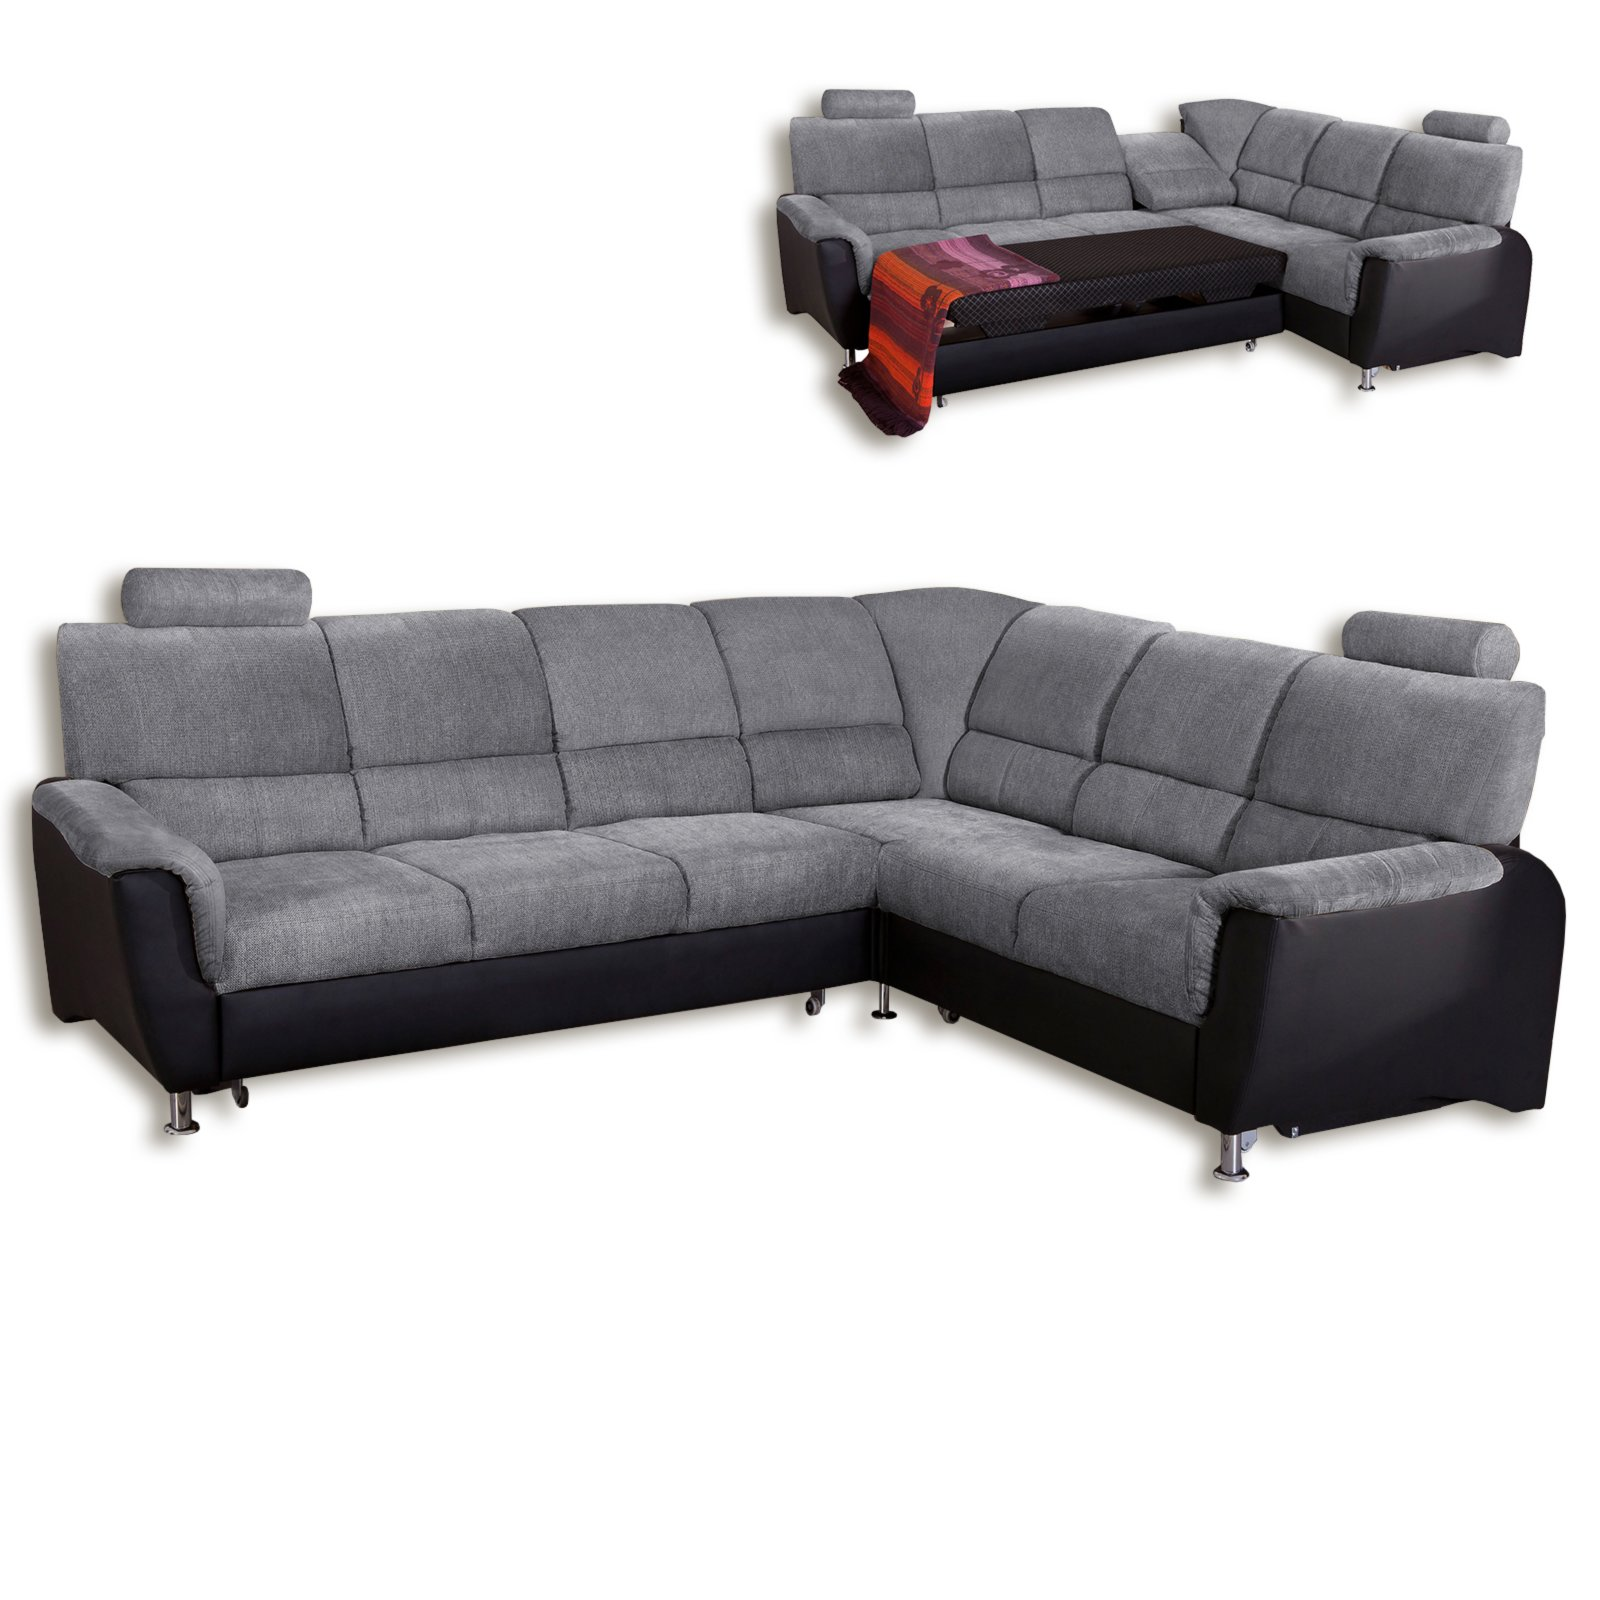 roller ecksofa grau schwarz 2 sitzer rechts ebay. Black Bedroom Furniture Sets. Home Design Ideas